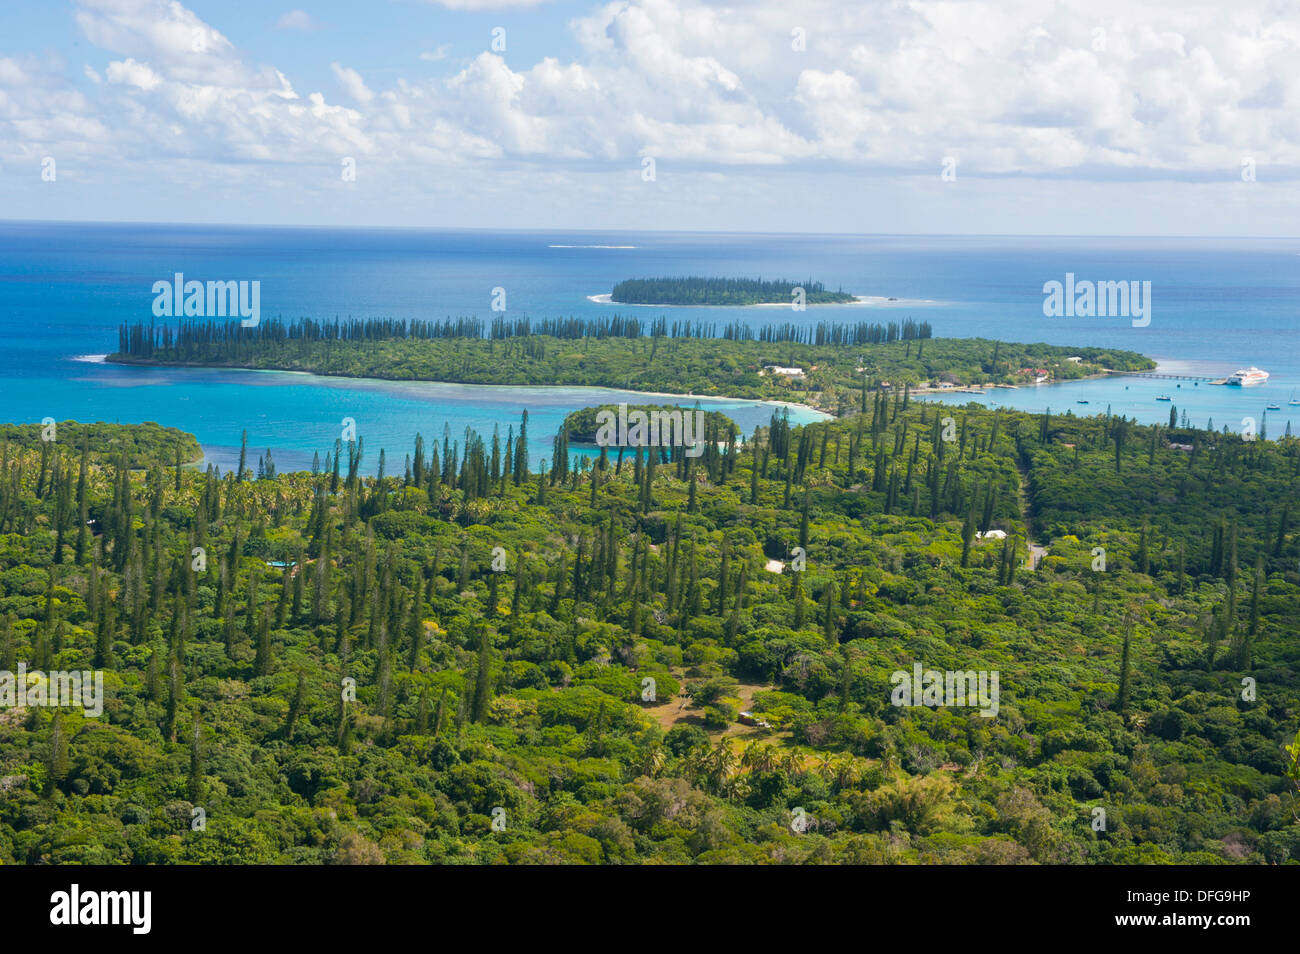 Overlooking the Ile des Pins, Île des Pins, New Caledonia, France - Stock Image